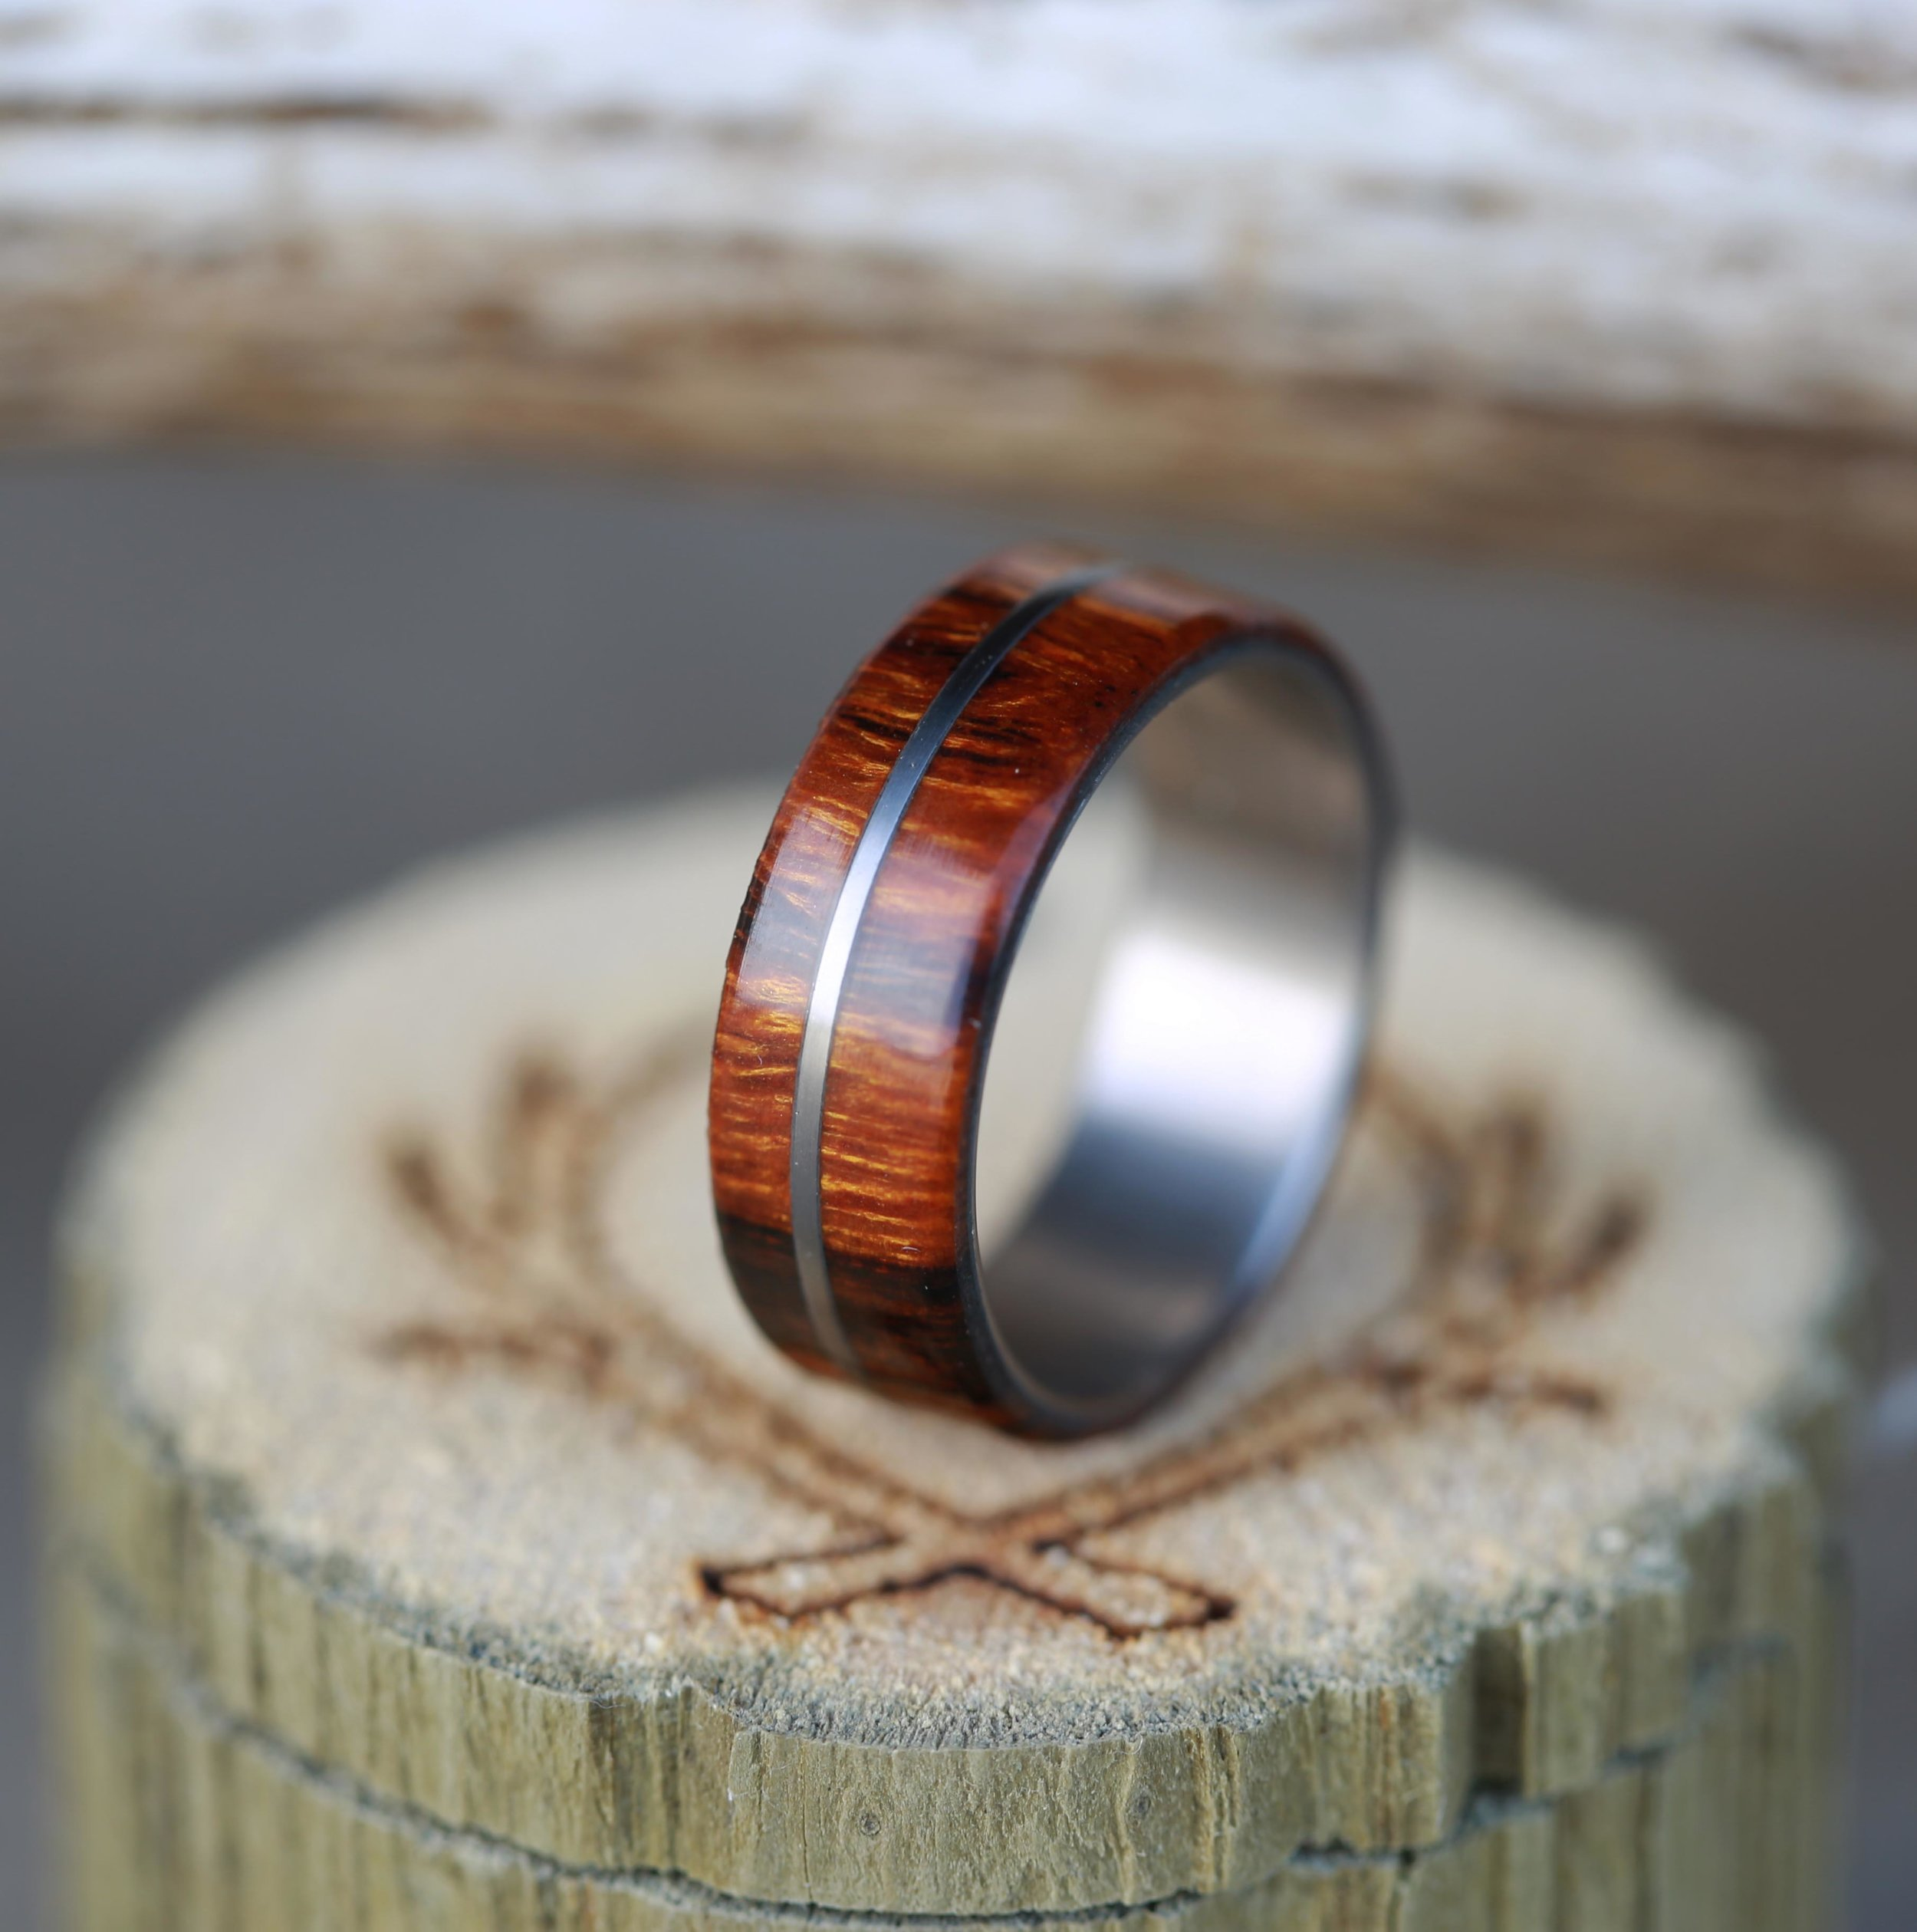 mens wood wedding band with metal inlay wooden wedding bands mens MEN S WOOD WEDDING BAND WITH METAL INLAY available in titanium silver or gold STAGHEAD DESIGNS